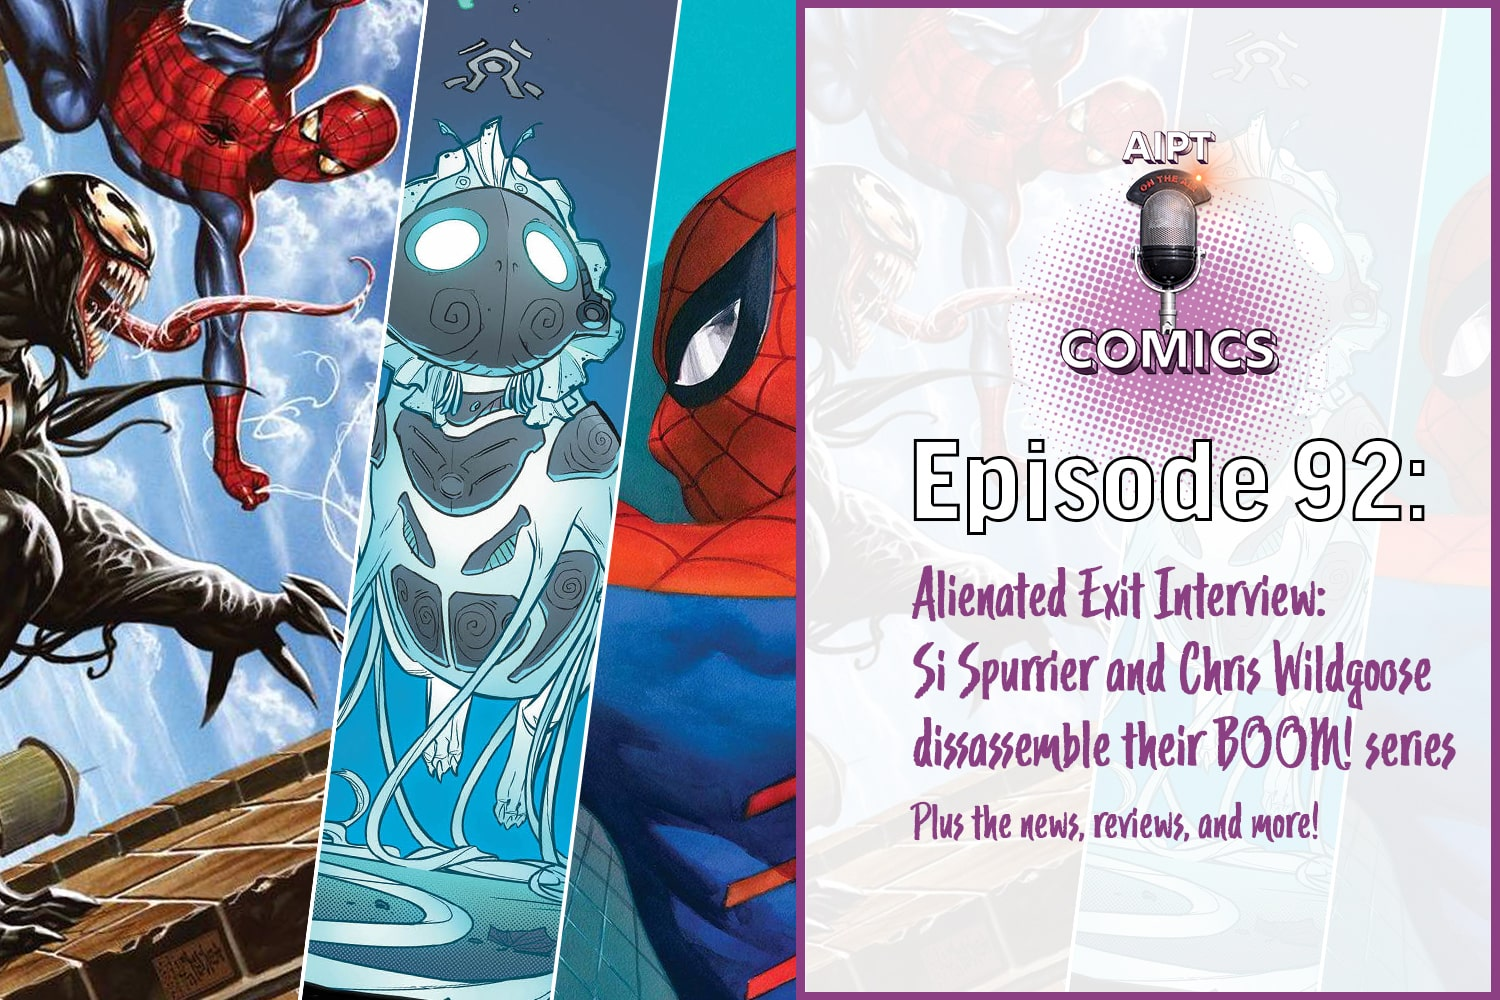 AIPT Comics Podcast Episode 92: Exit Interview: Si Spurrier and Chris Wildgoose break down sci-fi series Alienated